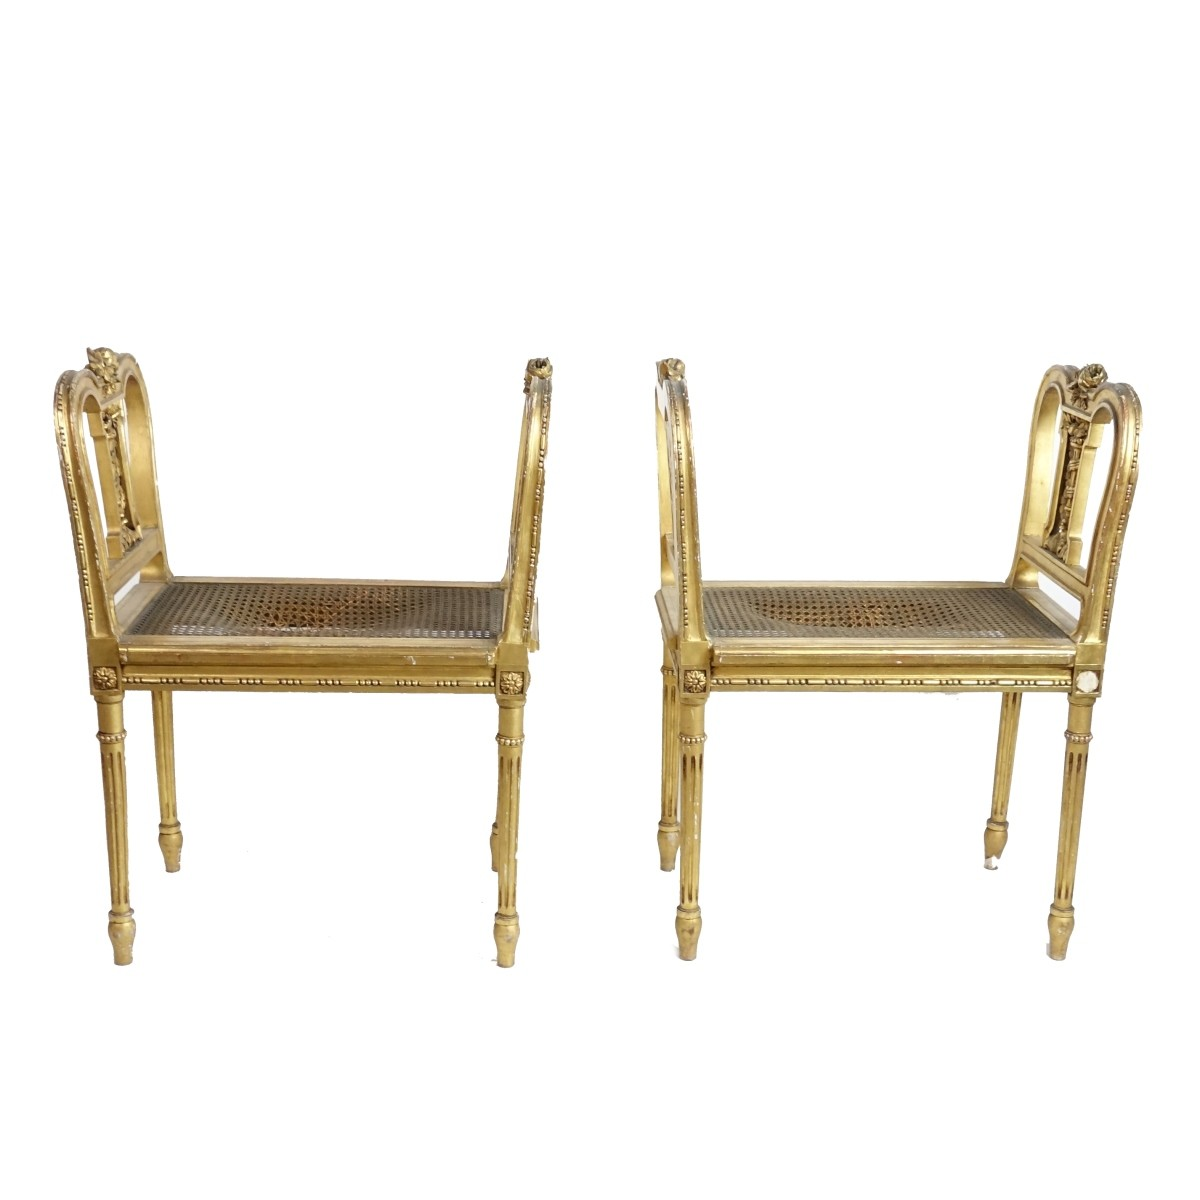 Pair of Louis XVI Style Benches